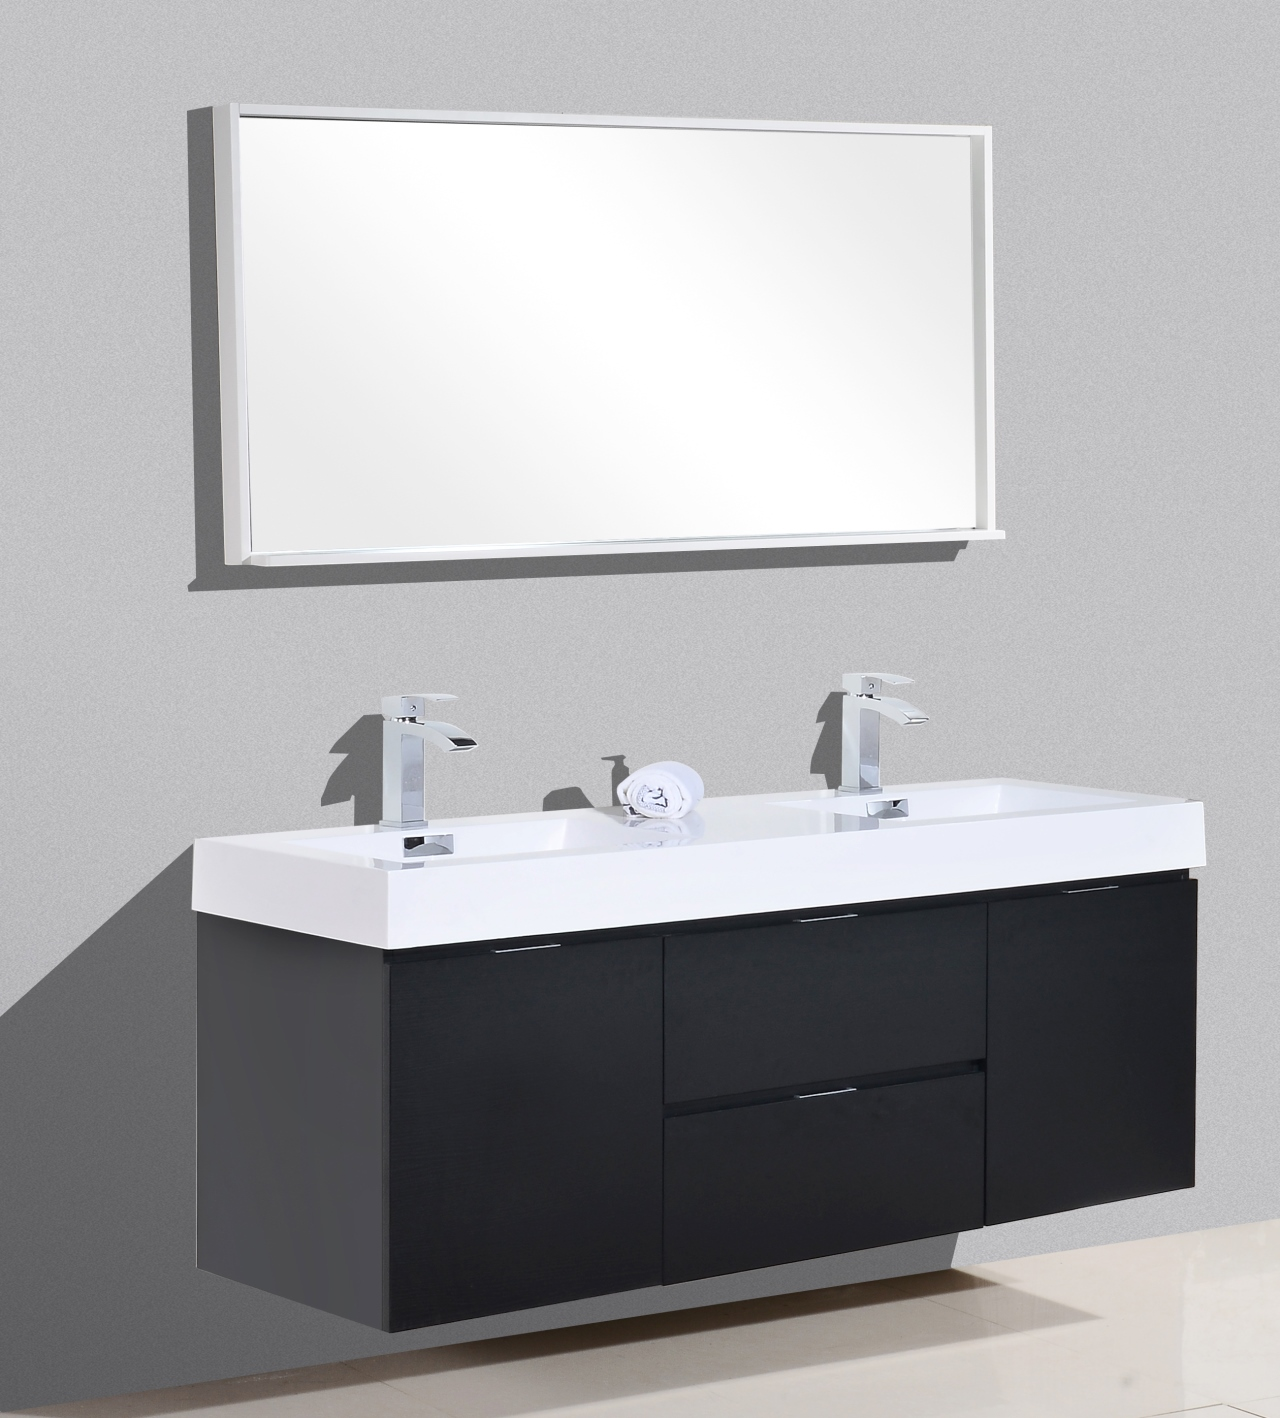 categories en faucet ikea porcelain godmorgon vanities ca white cabinets countertops catalog chrome featuring departments vanity two with sink sinkcabinets and cabinet bathroom drawers